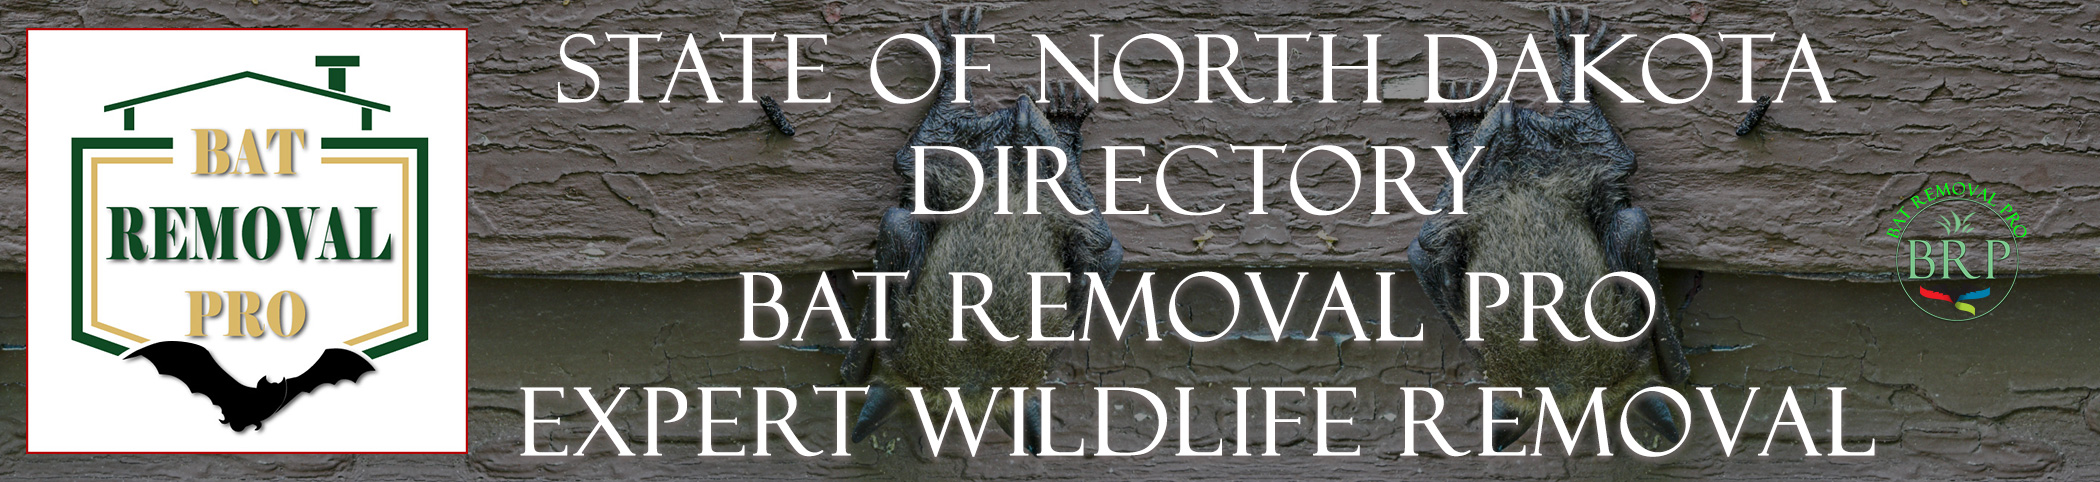 NORTH-DAKOTA-bat-removal-at-bat-removal-pro-header-image